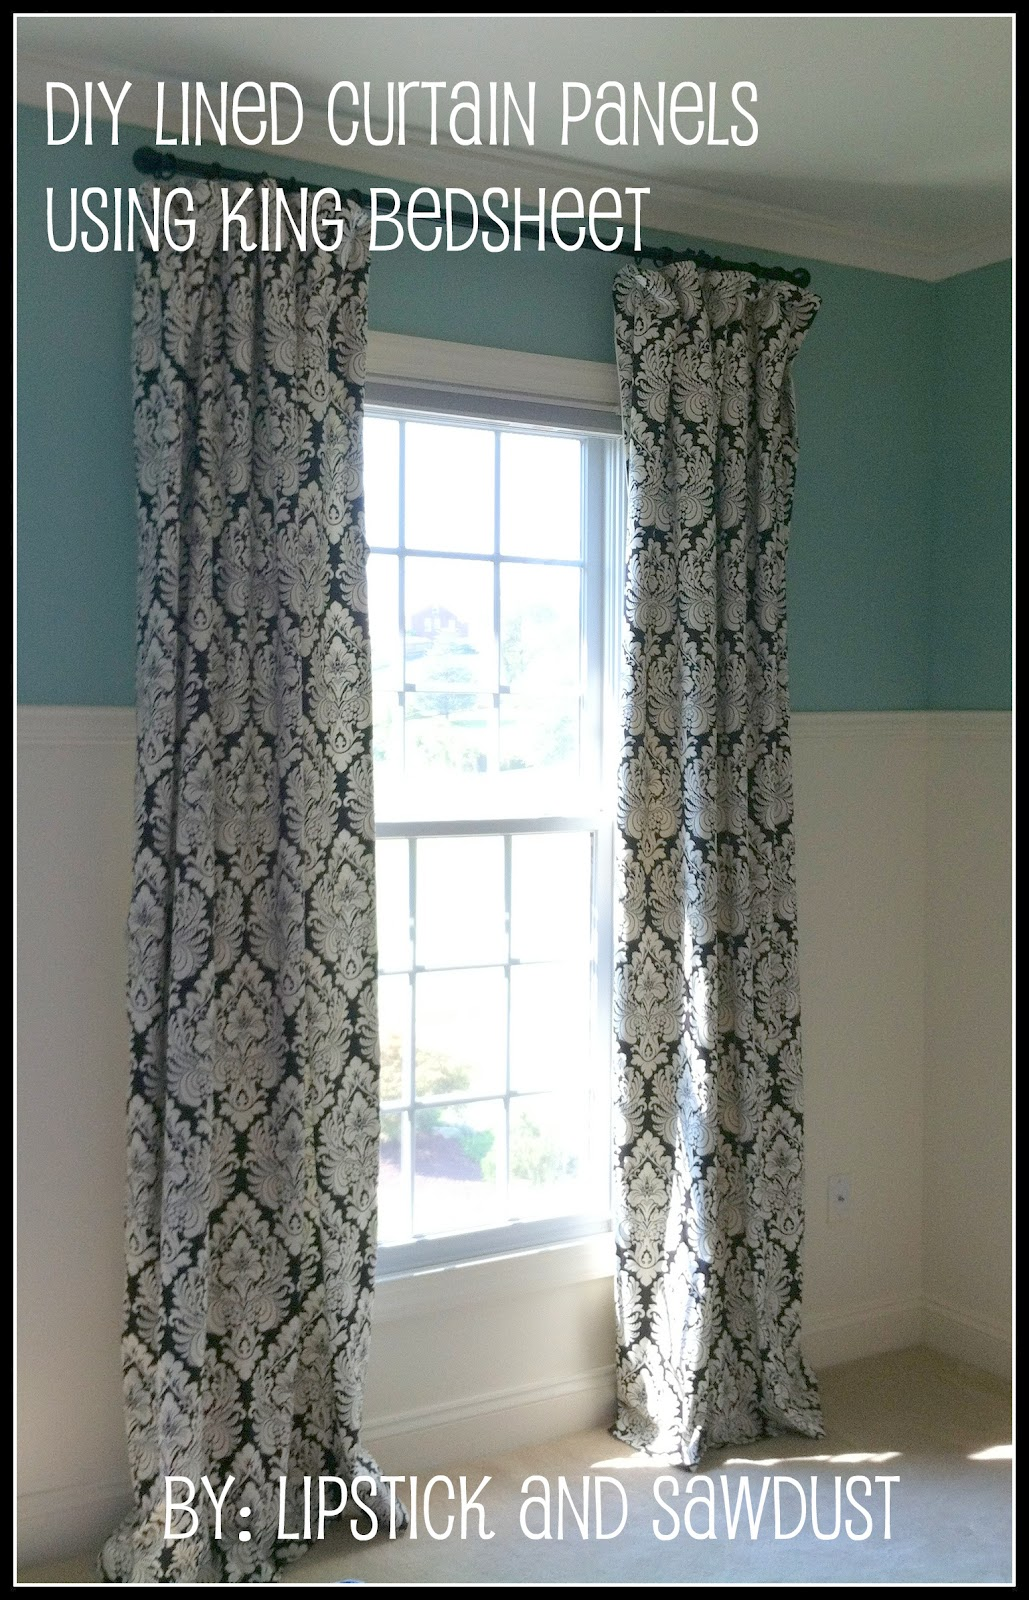 How To Make Lined Curtain Panels Lipstick And Sawdust Diy Curtain Panels Using Bedsheets As Lining